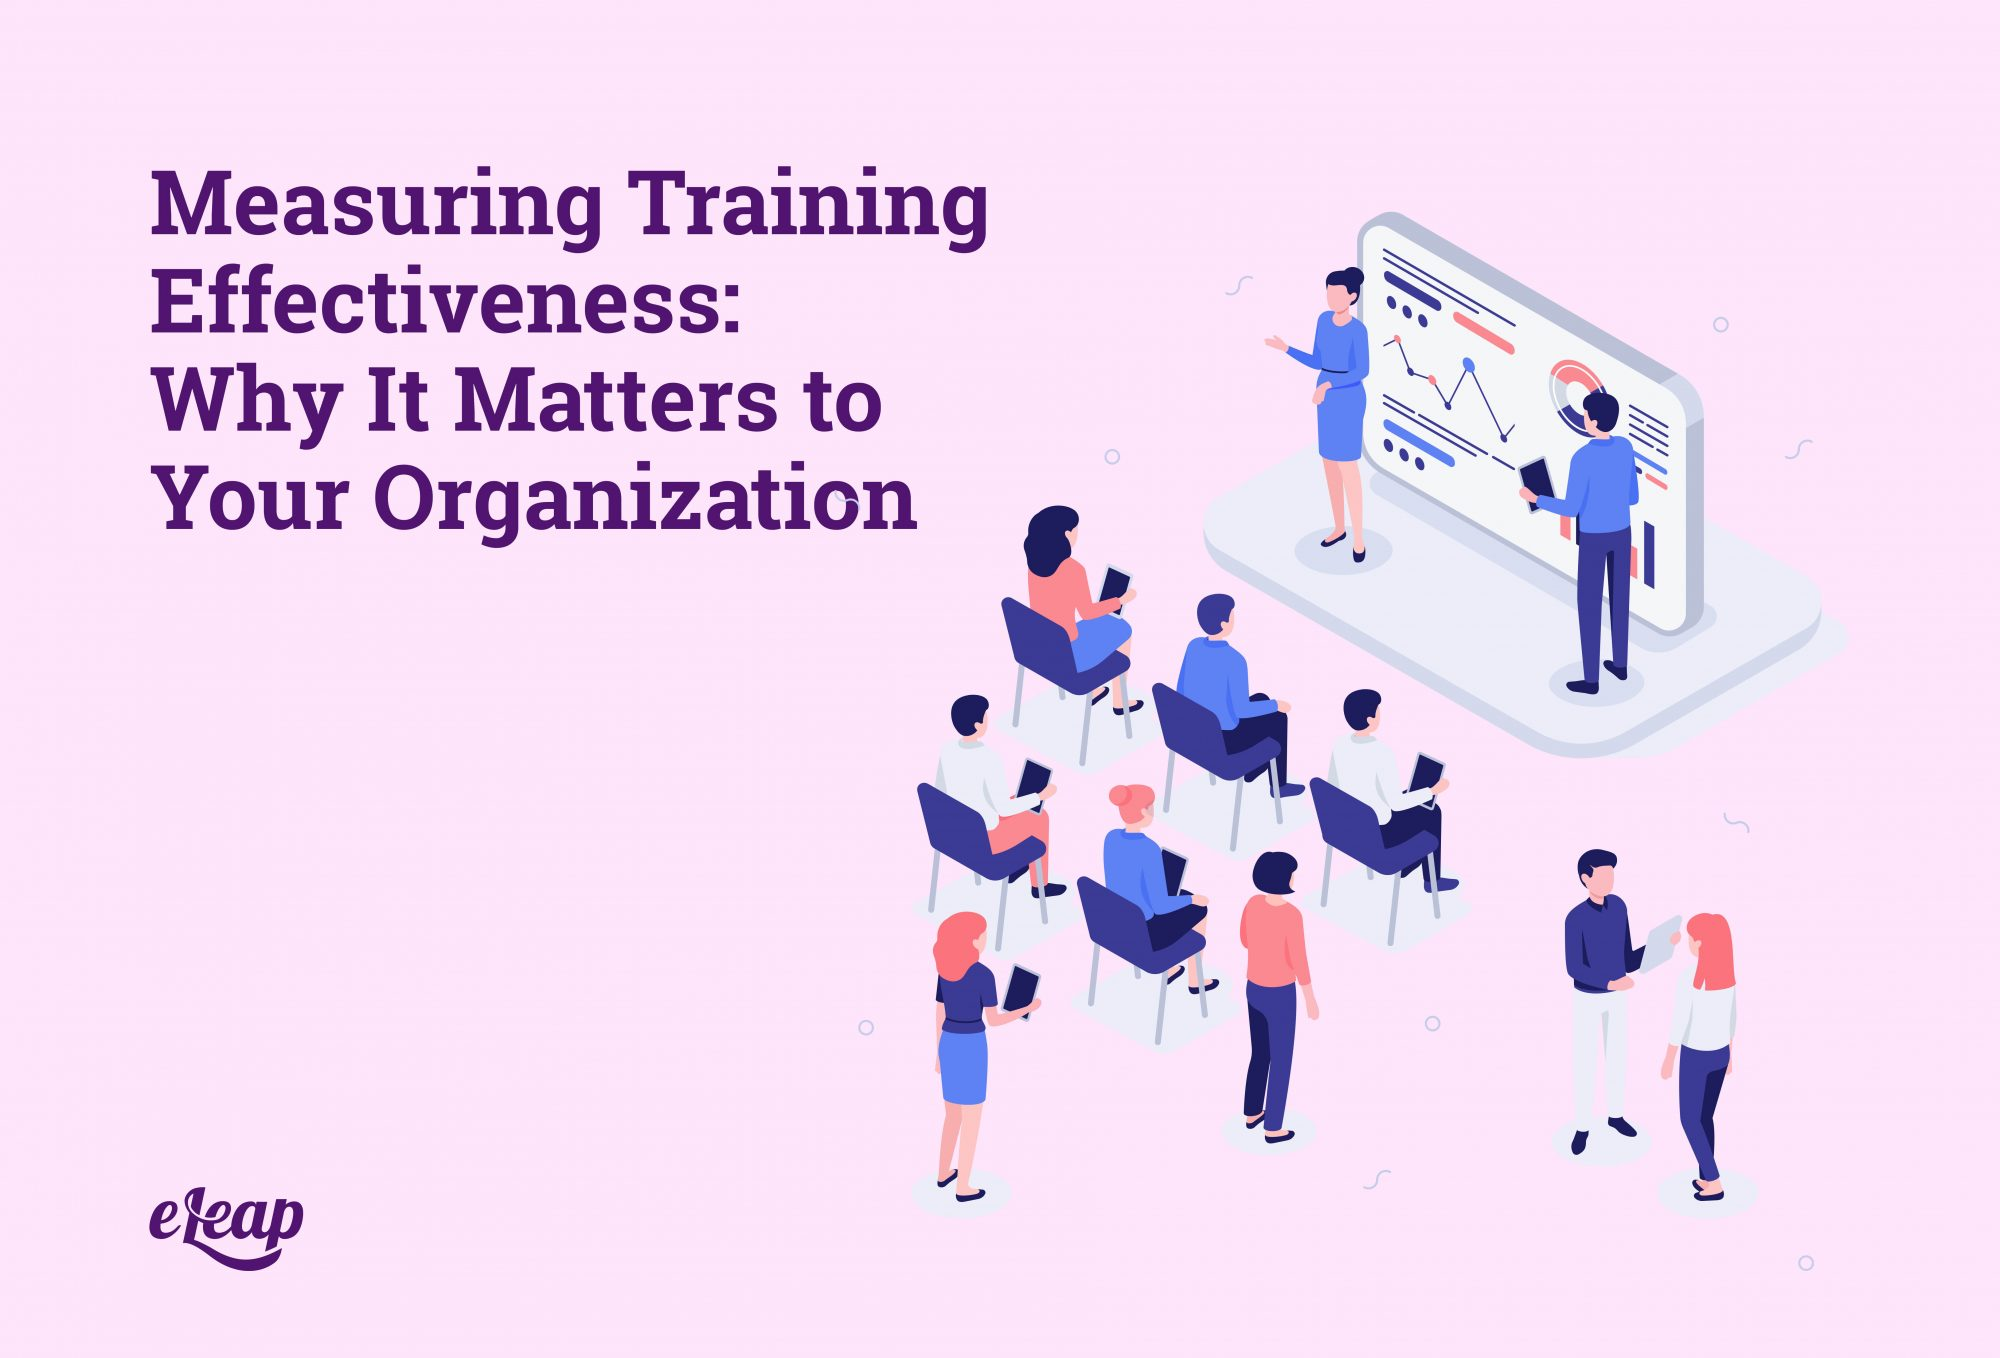 Measuring Training Effectiveness: Why It Matters to Your Organization